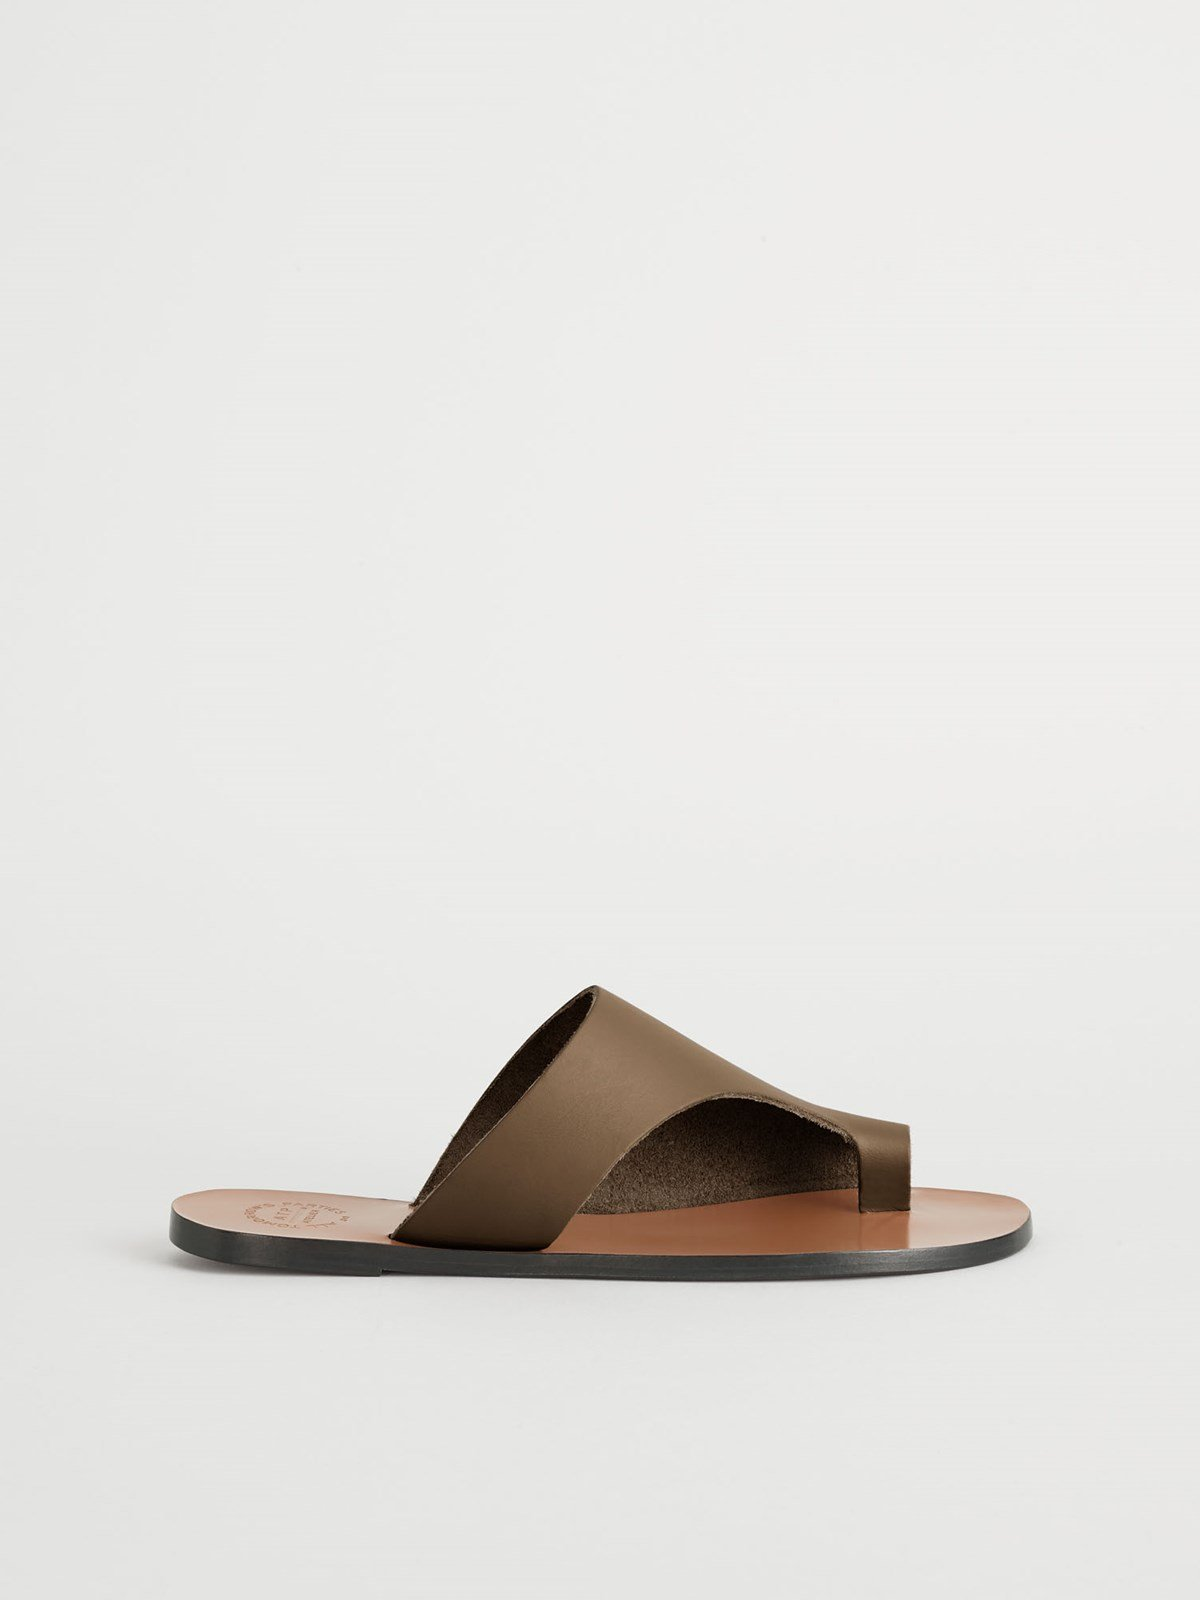 Rosa Khaki Brown Cutout sandals